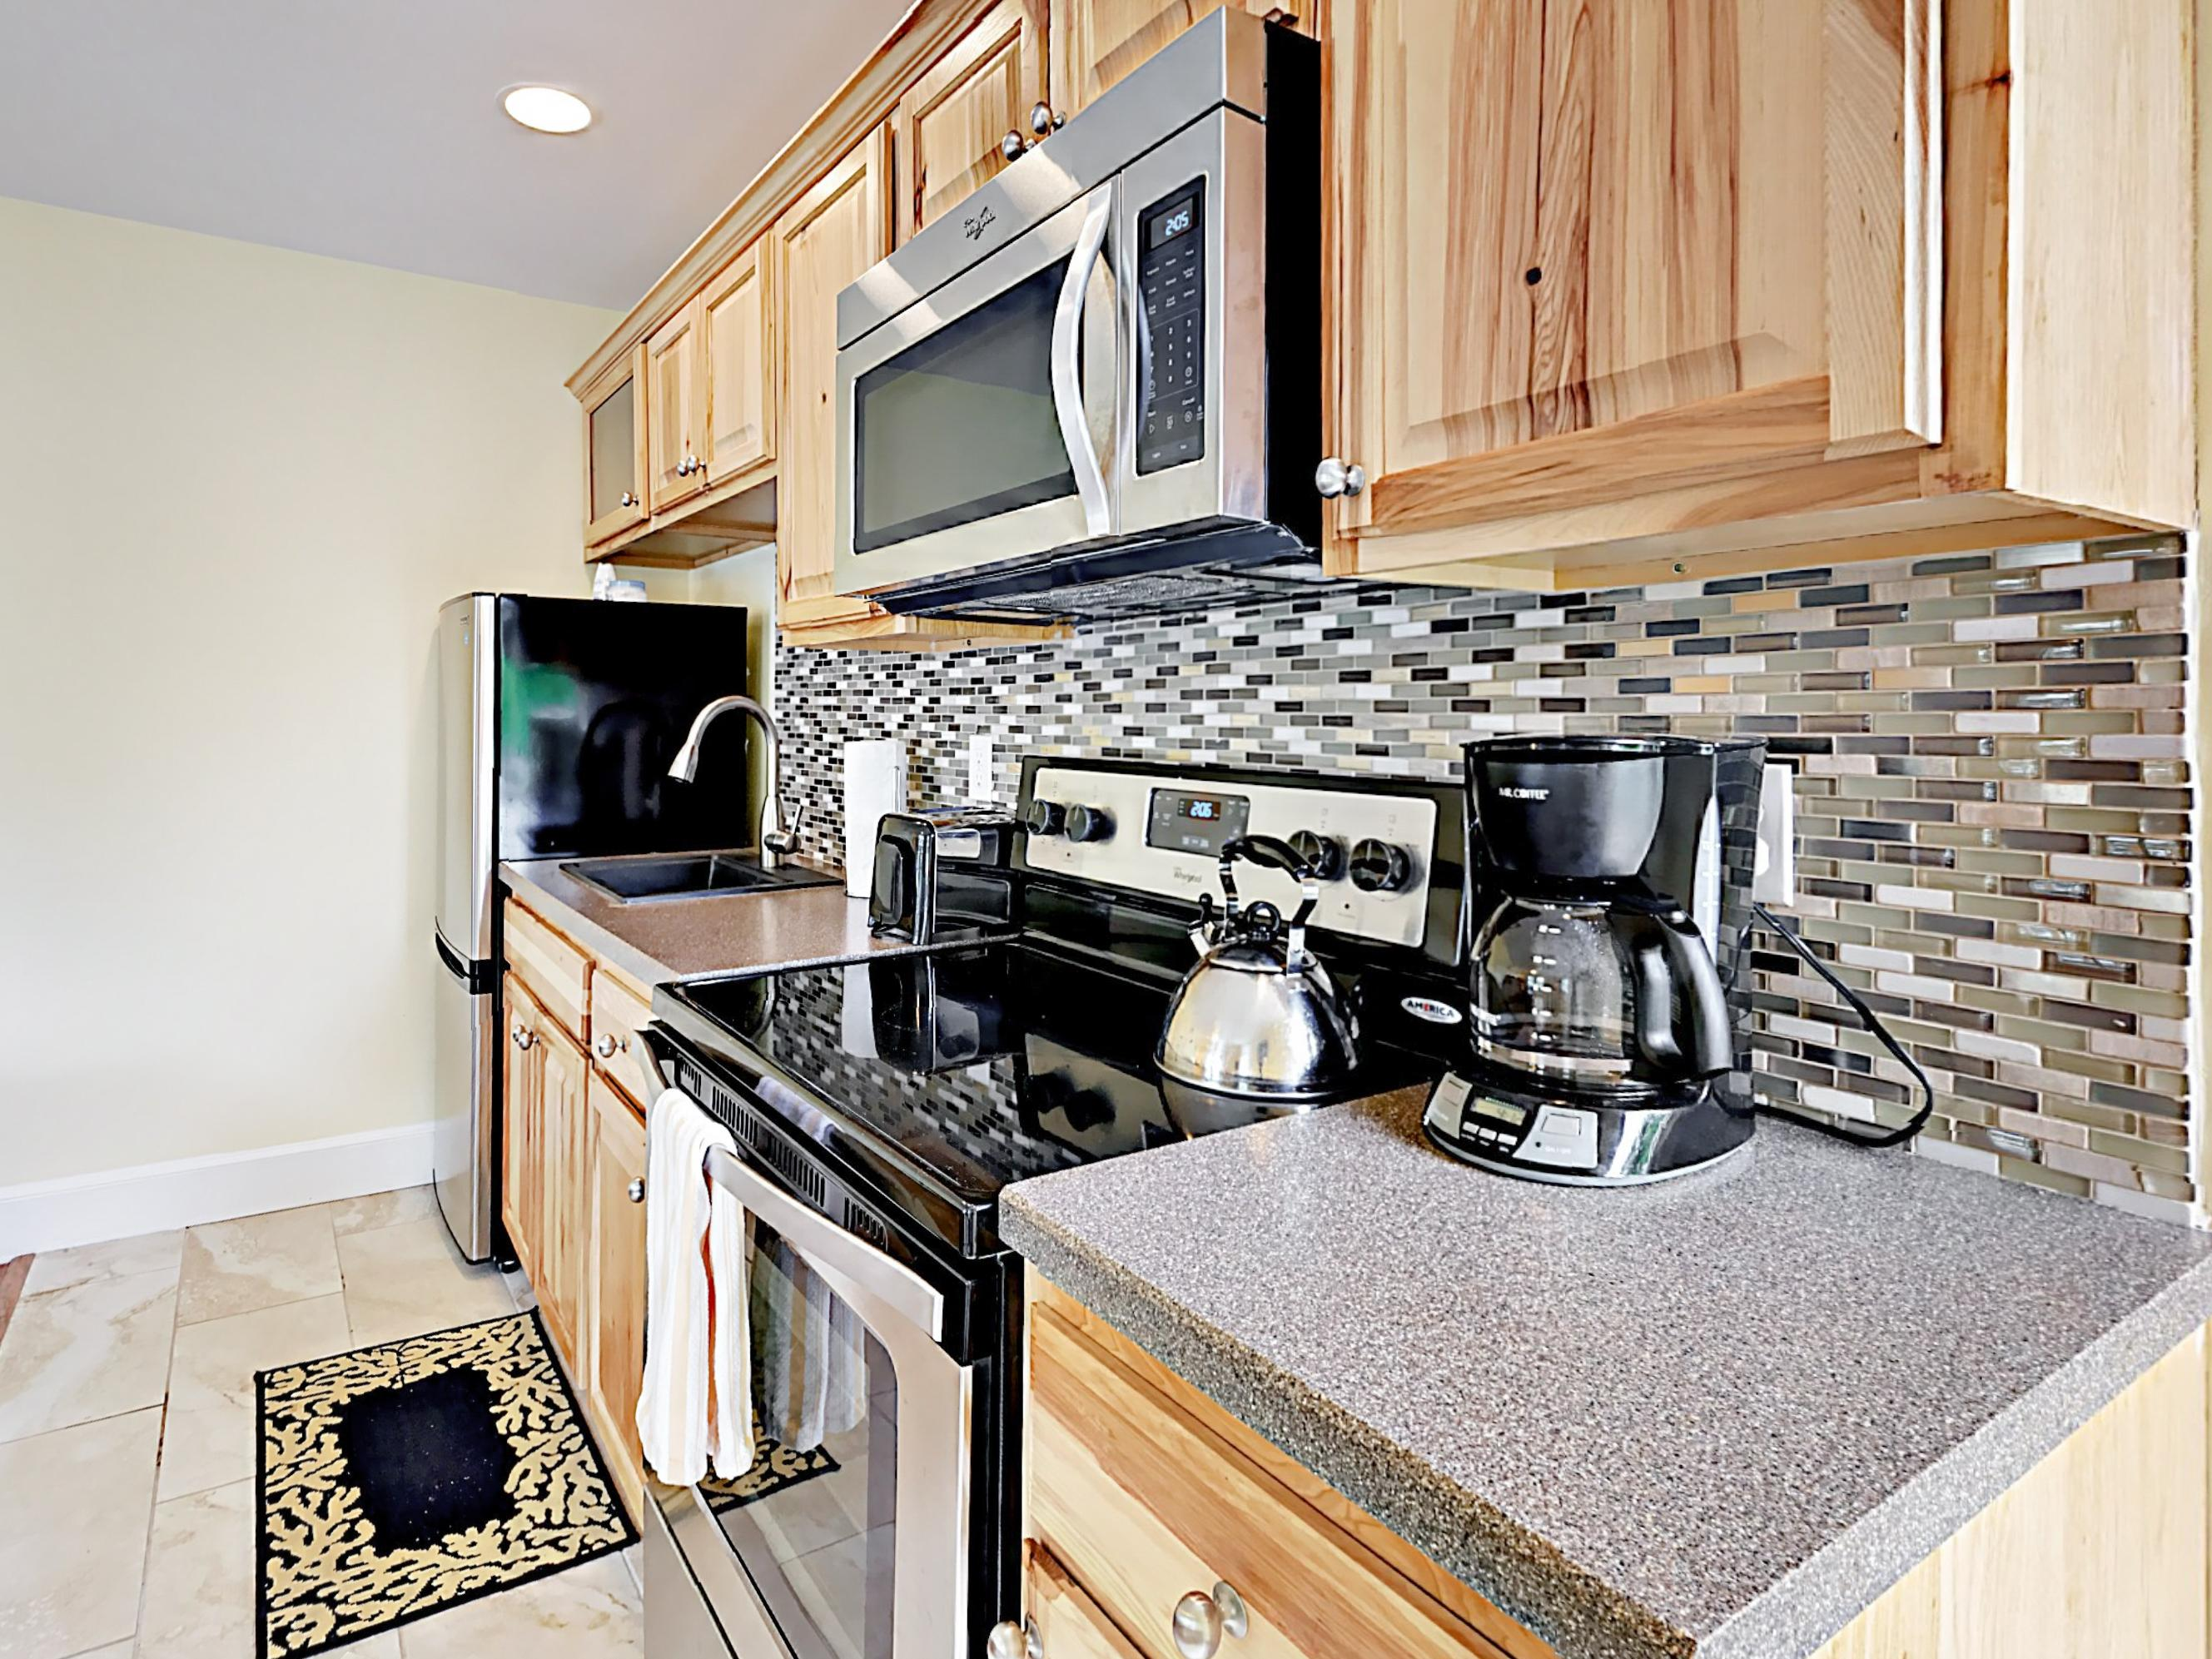 The kitchen includes a stainless steel fridge/freezer, stove/oven, and microwave